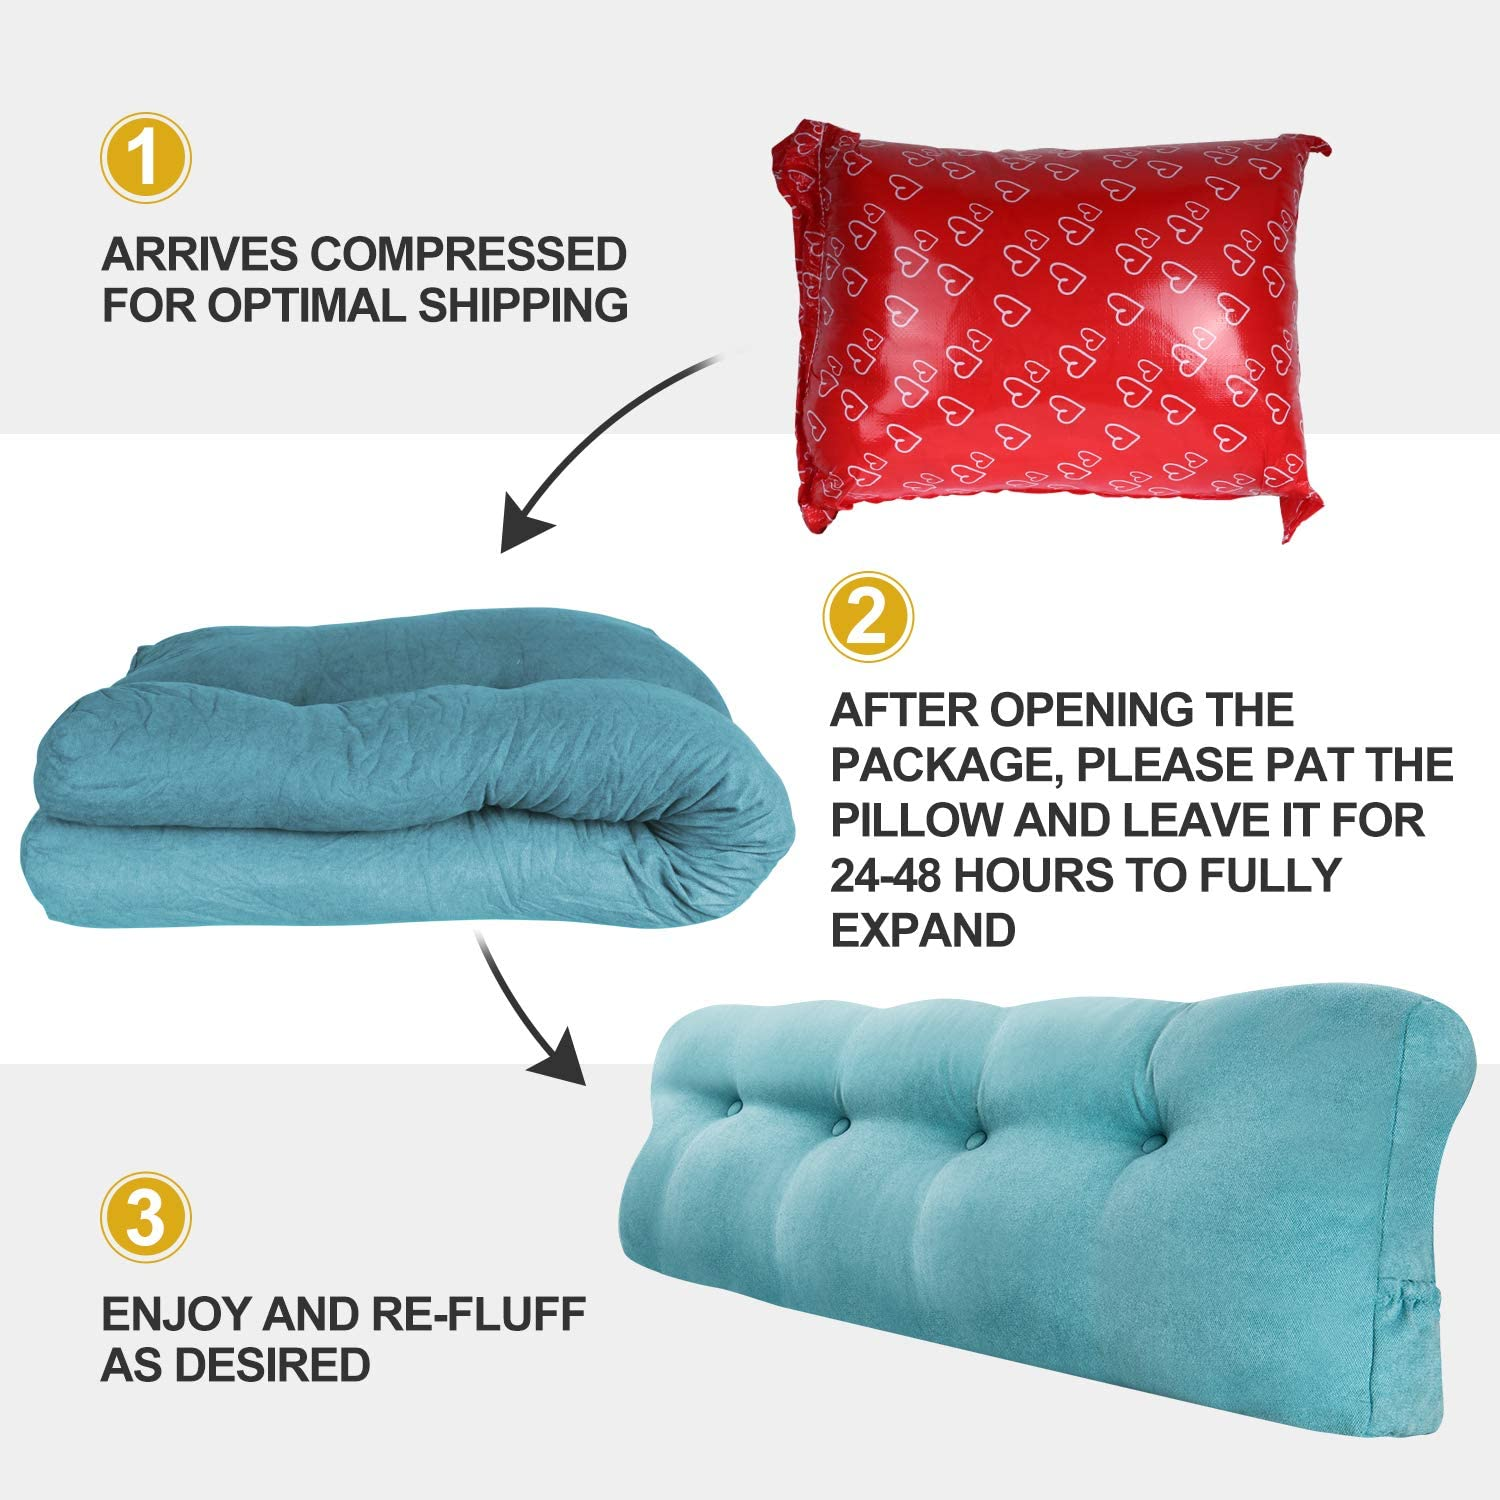 Perfect Bolster Lumbar Cushion for Day Bed /& Bunk Bed Vekkia Large Triangular Bed Rest Positioning Support Pillow for Reading in Bed Wedge Headboard Pillow with Removable Cover Blue (Full)